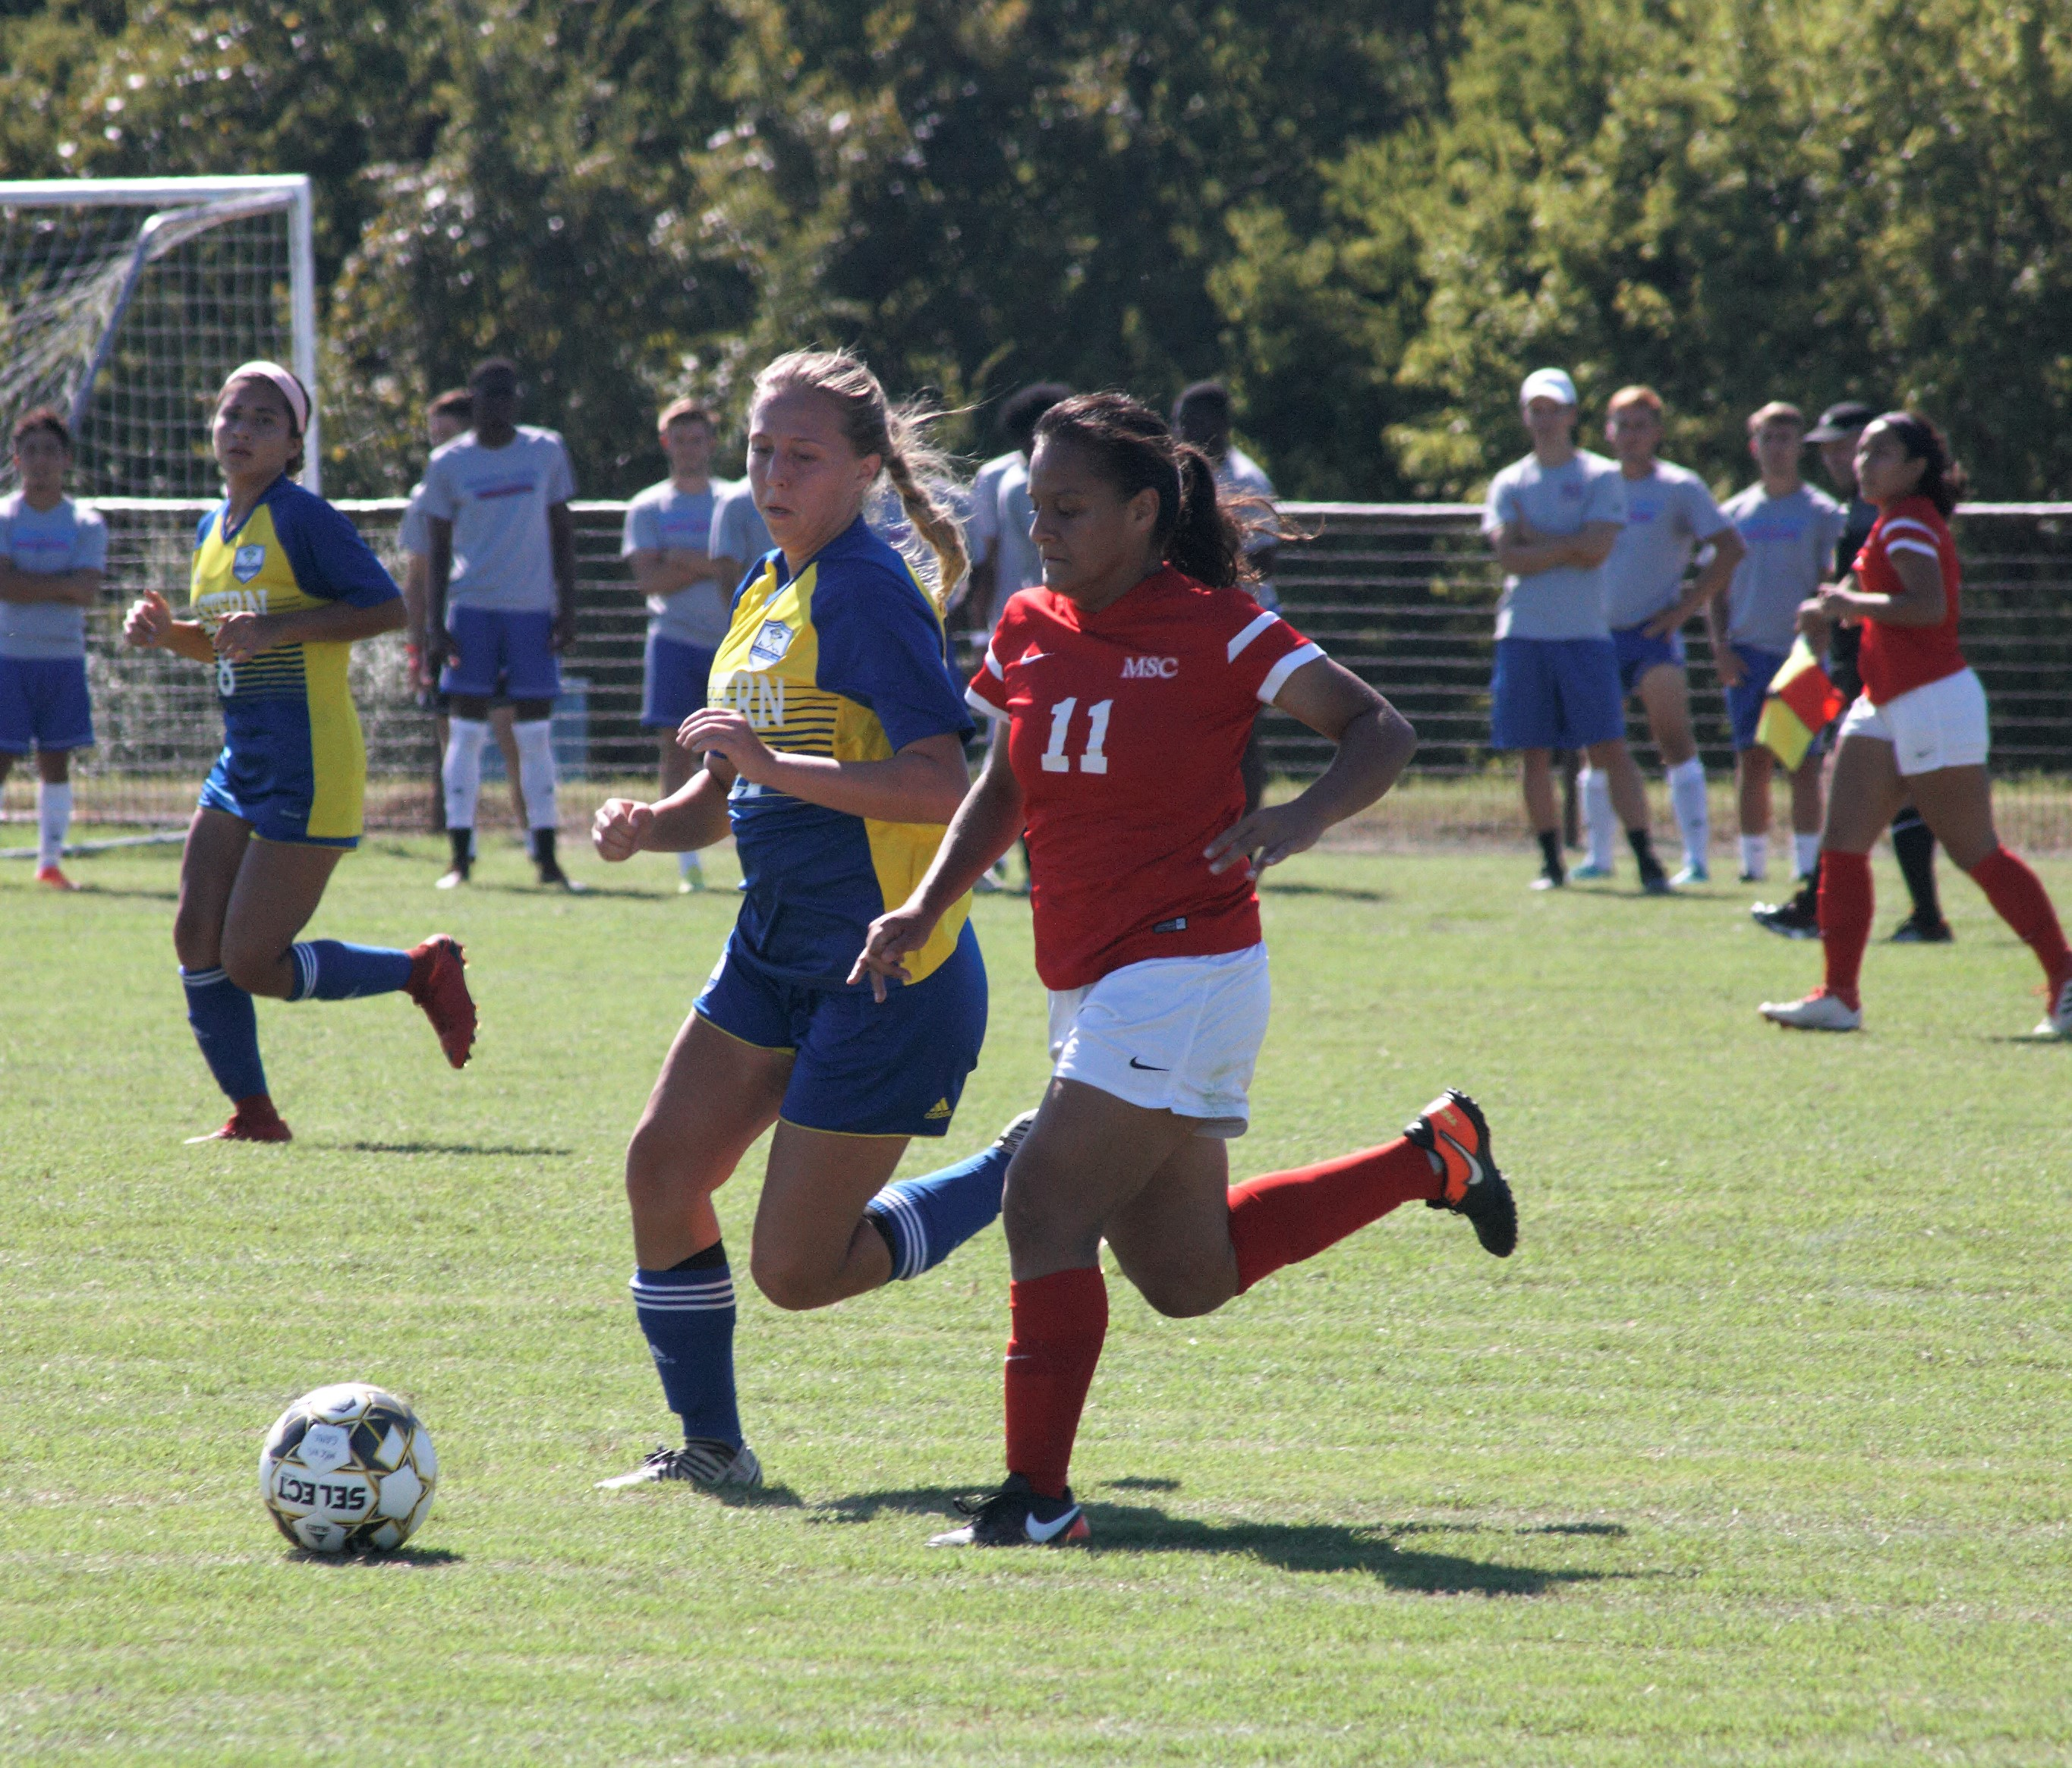 MSC Women's & Men's Soccer Teams kick off season with multiple games